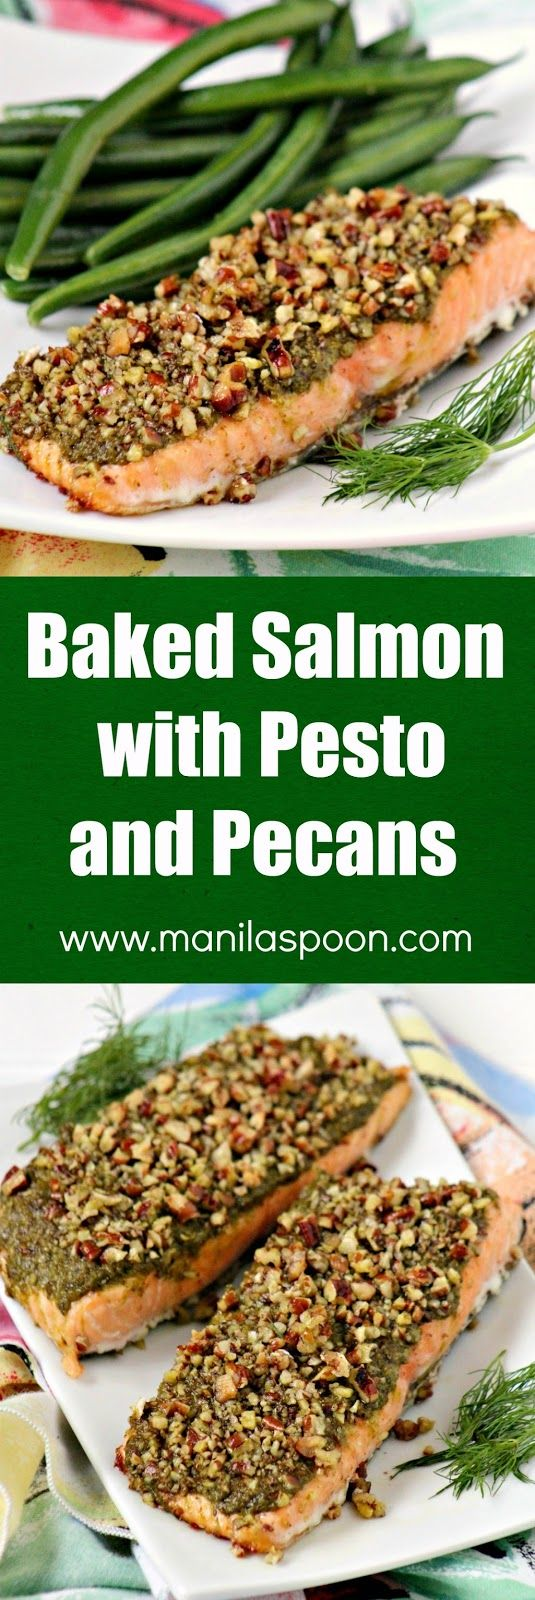 Just 3 ingredients to make this easy, quick and very tasty Baked Salmon with Pesto and Pecans. Even non-Salmon fans will love this! | manilaspoon.com